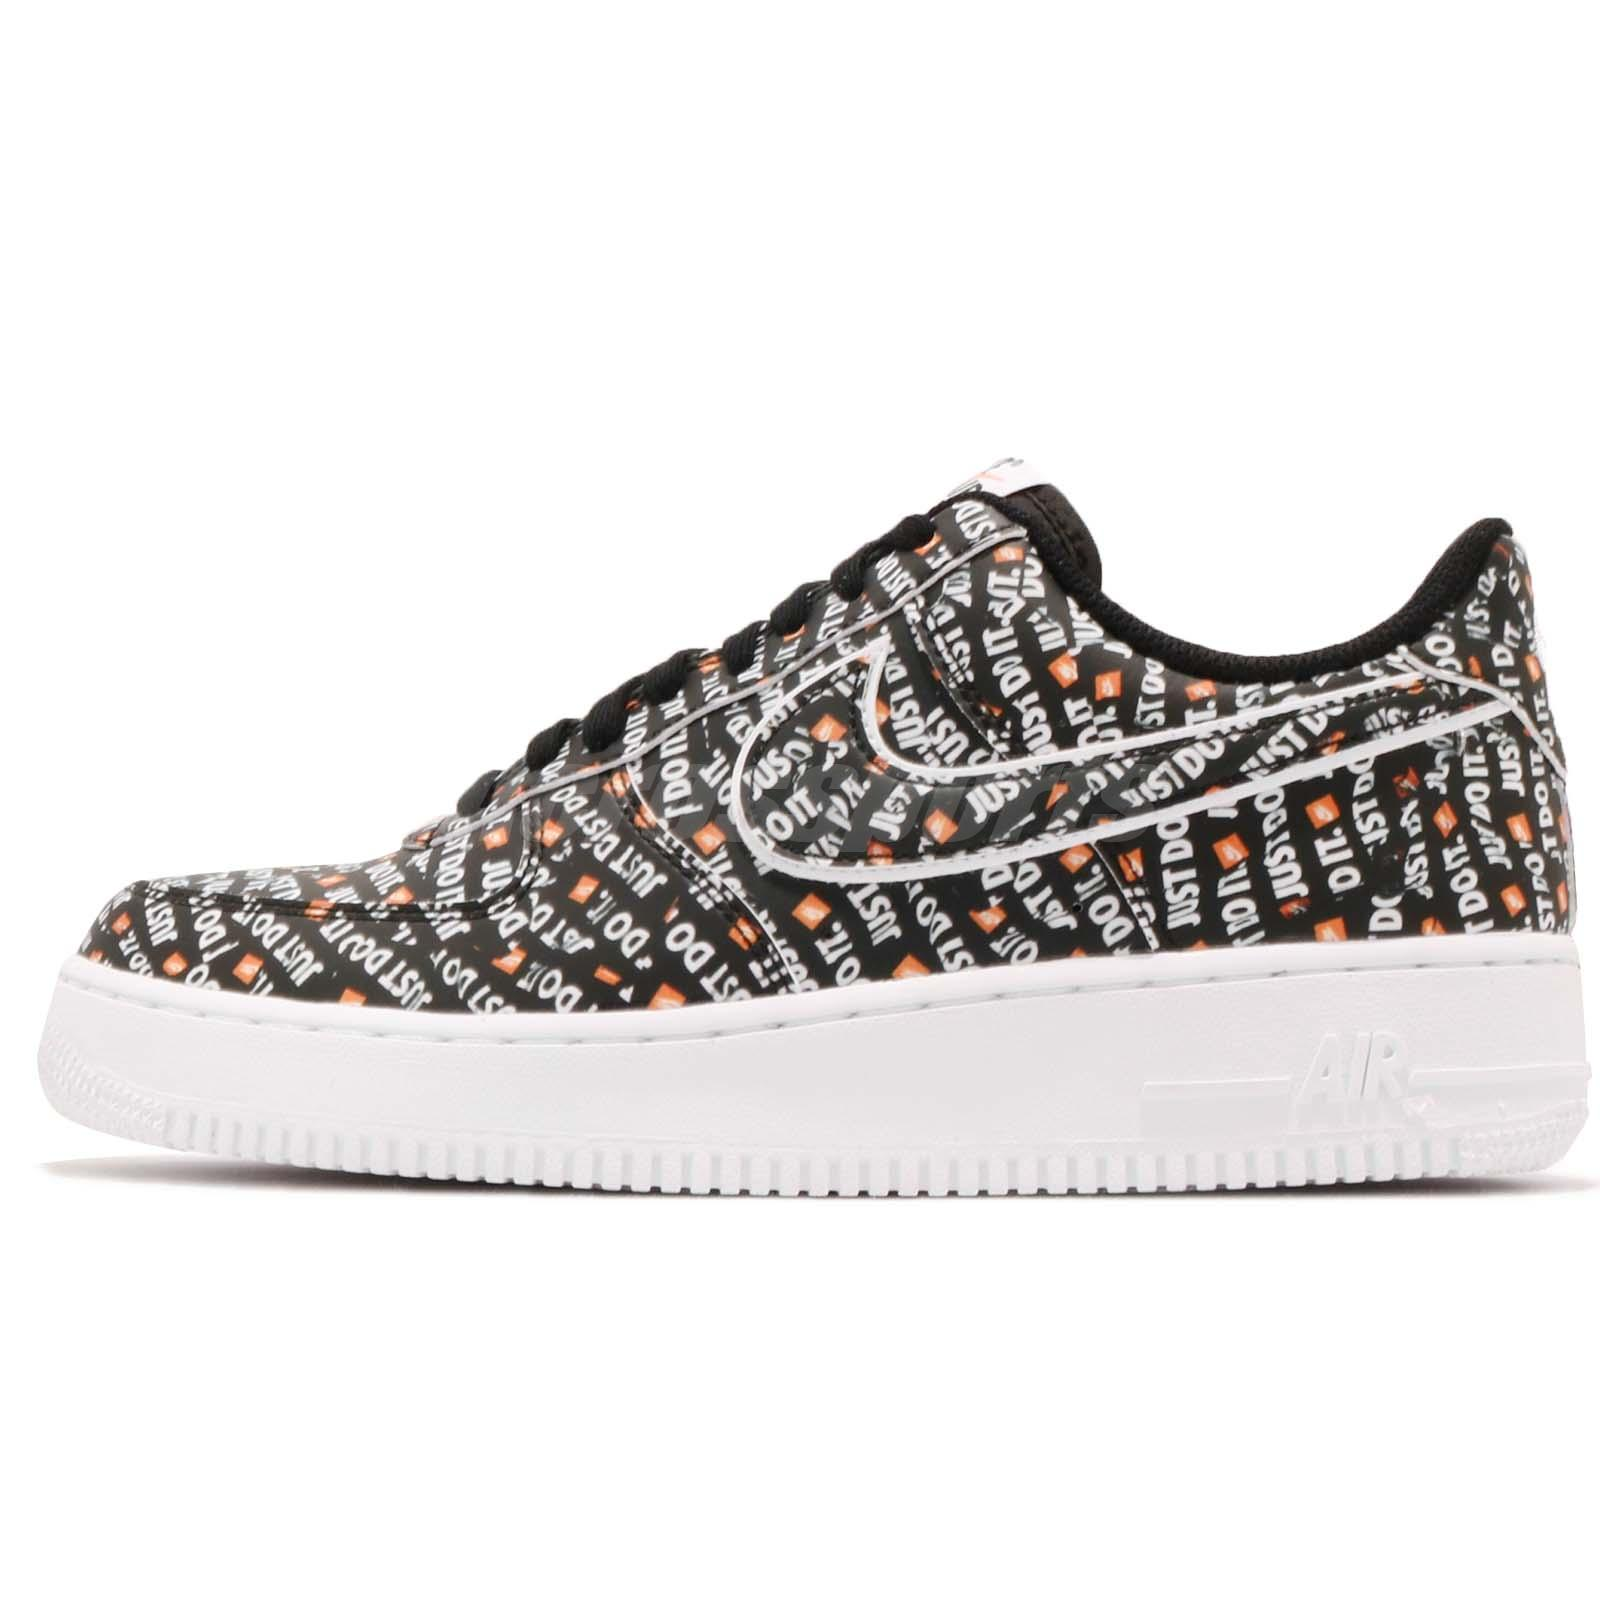 finest selection 381b3 edc30 Nike Air Force 1 07 LV8 JDI Just Do It Black White Mens AF1 Sneakers  AO6296-001